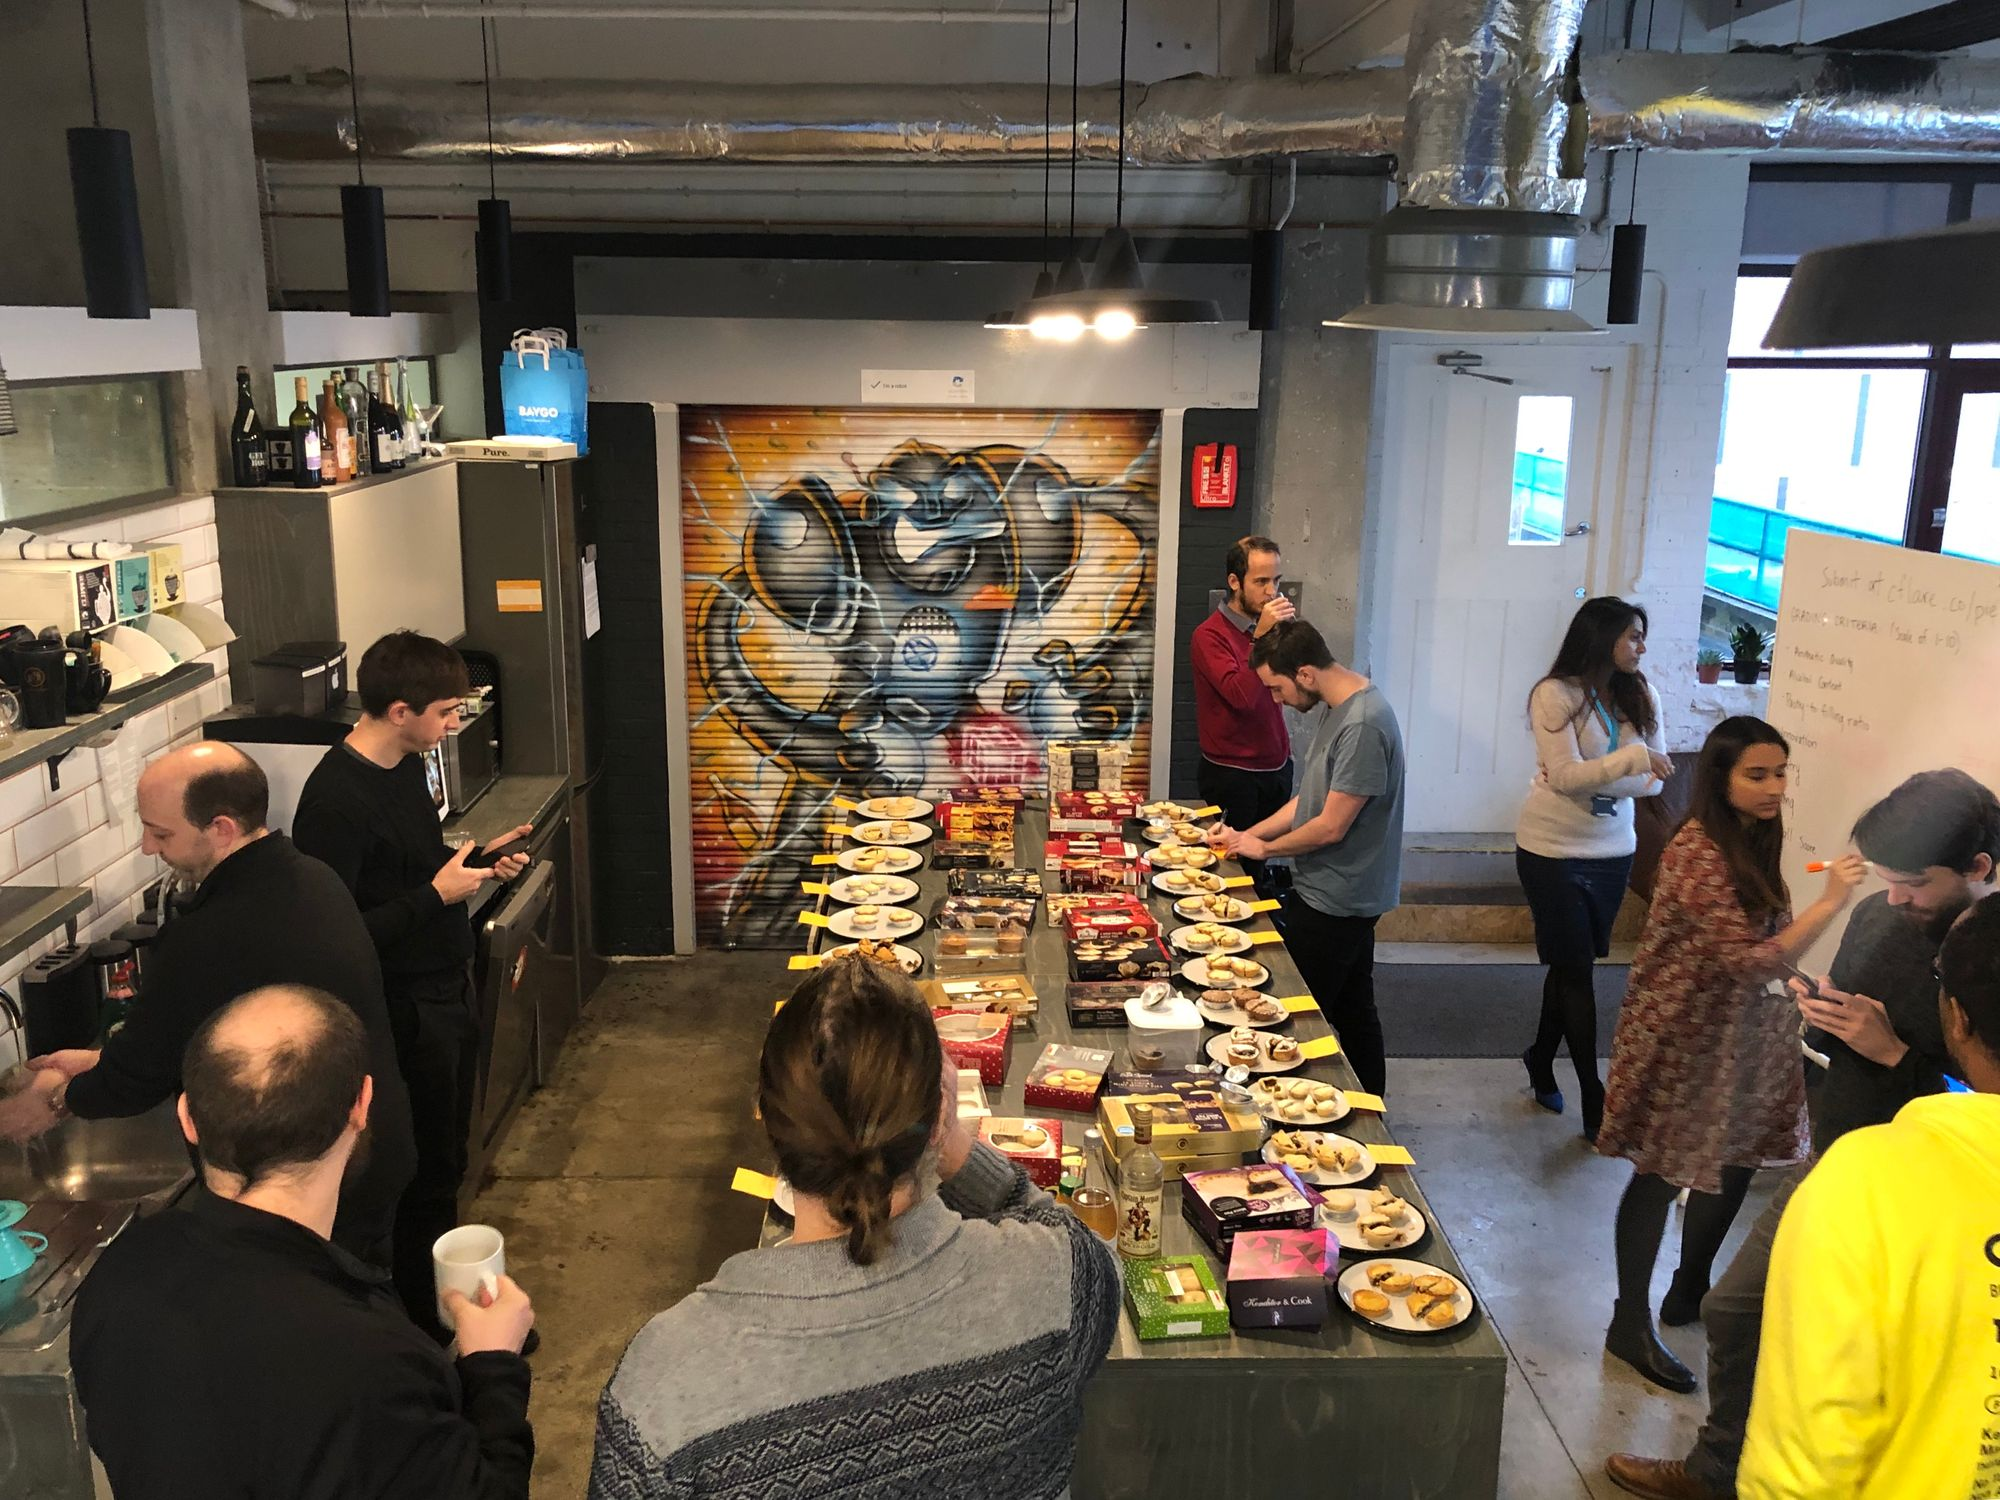 The 2018 Cloudflare Mince Pie Jam